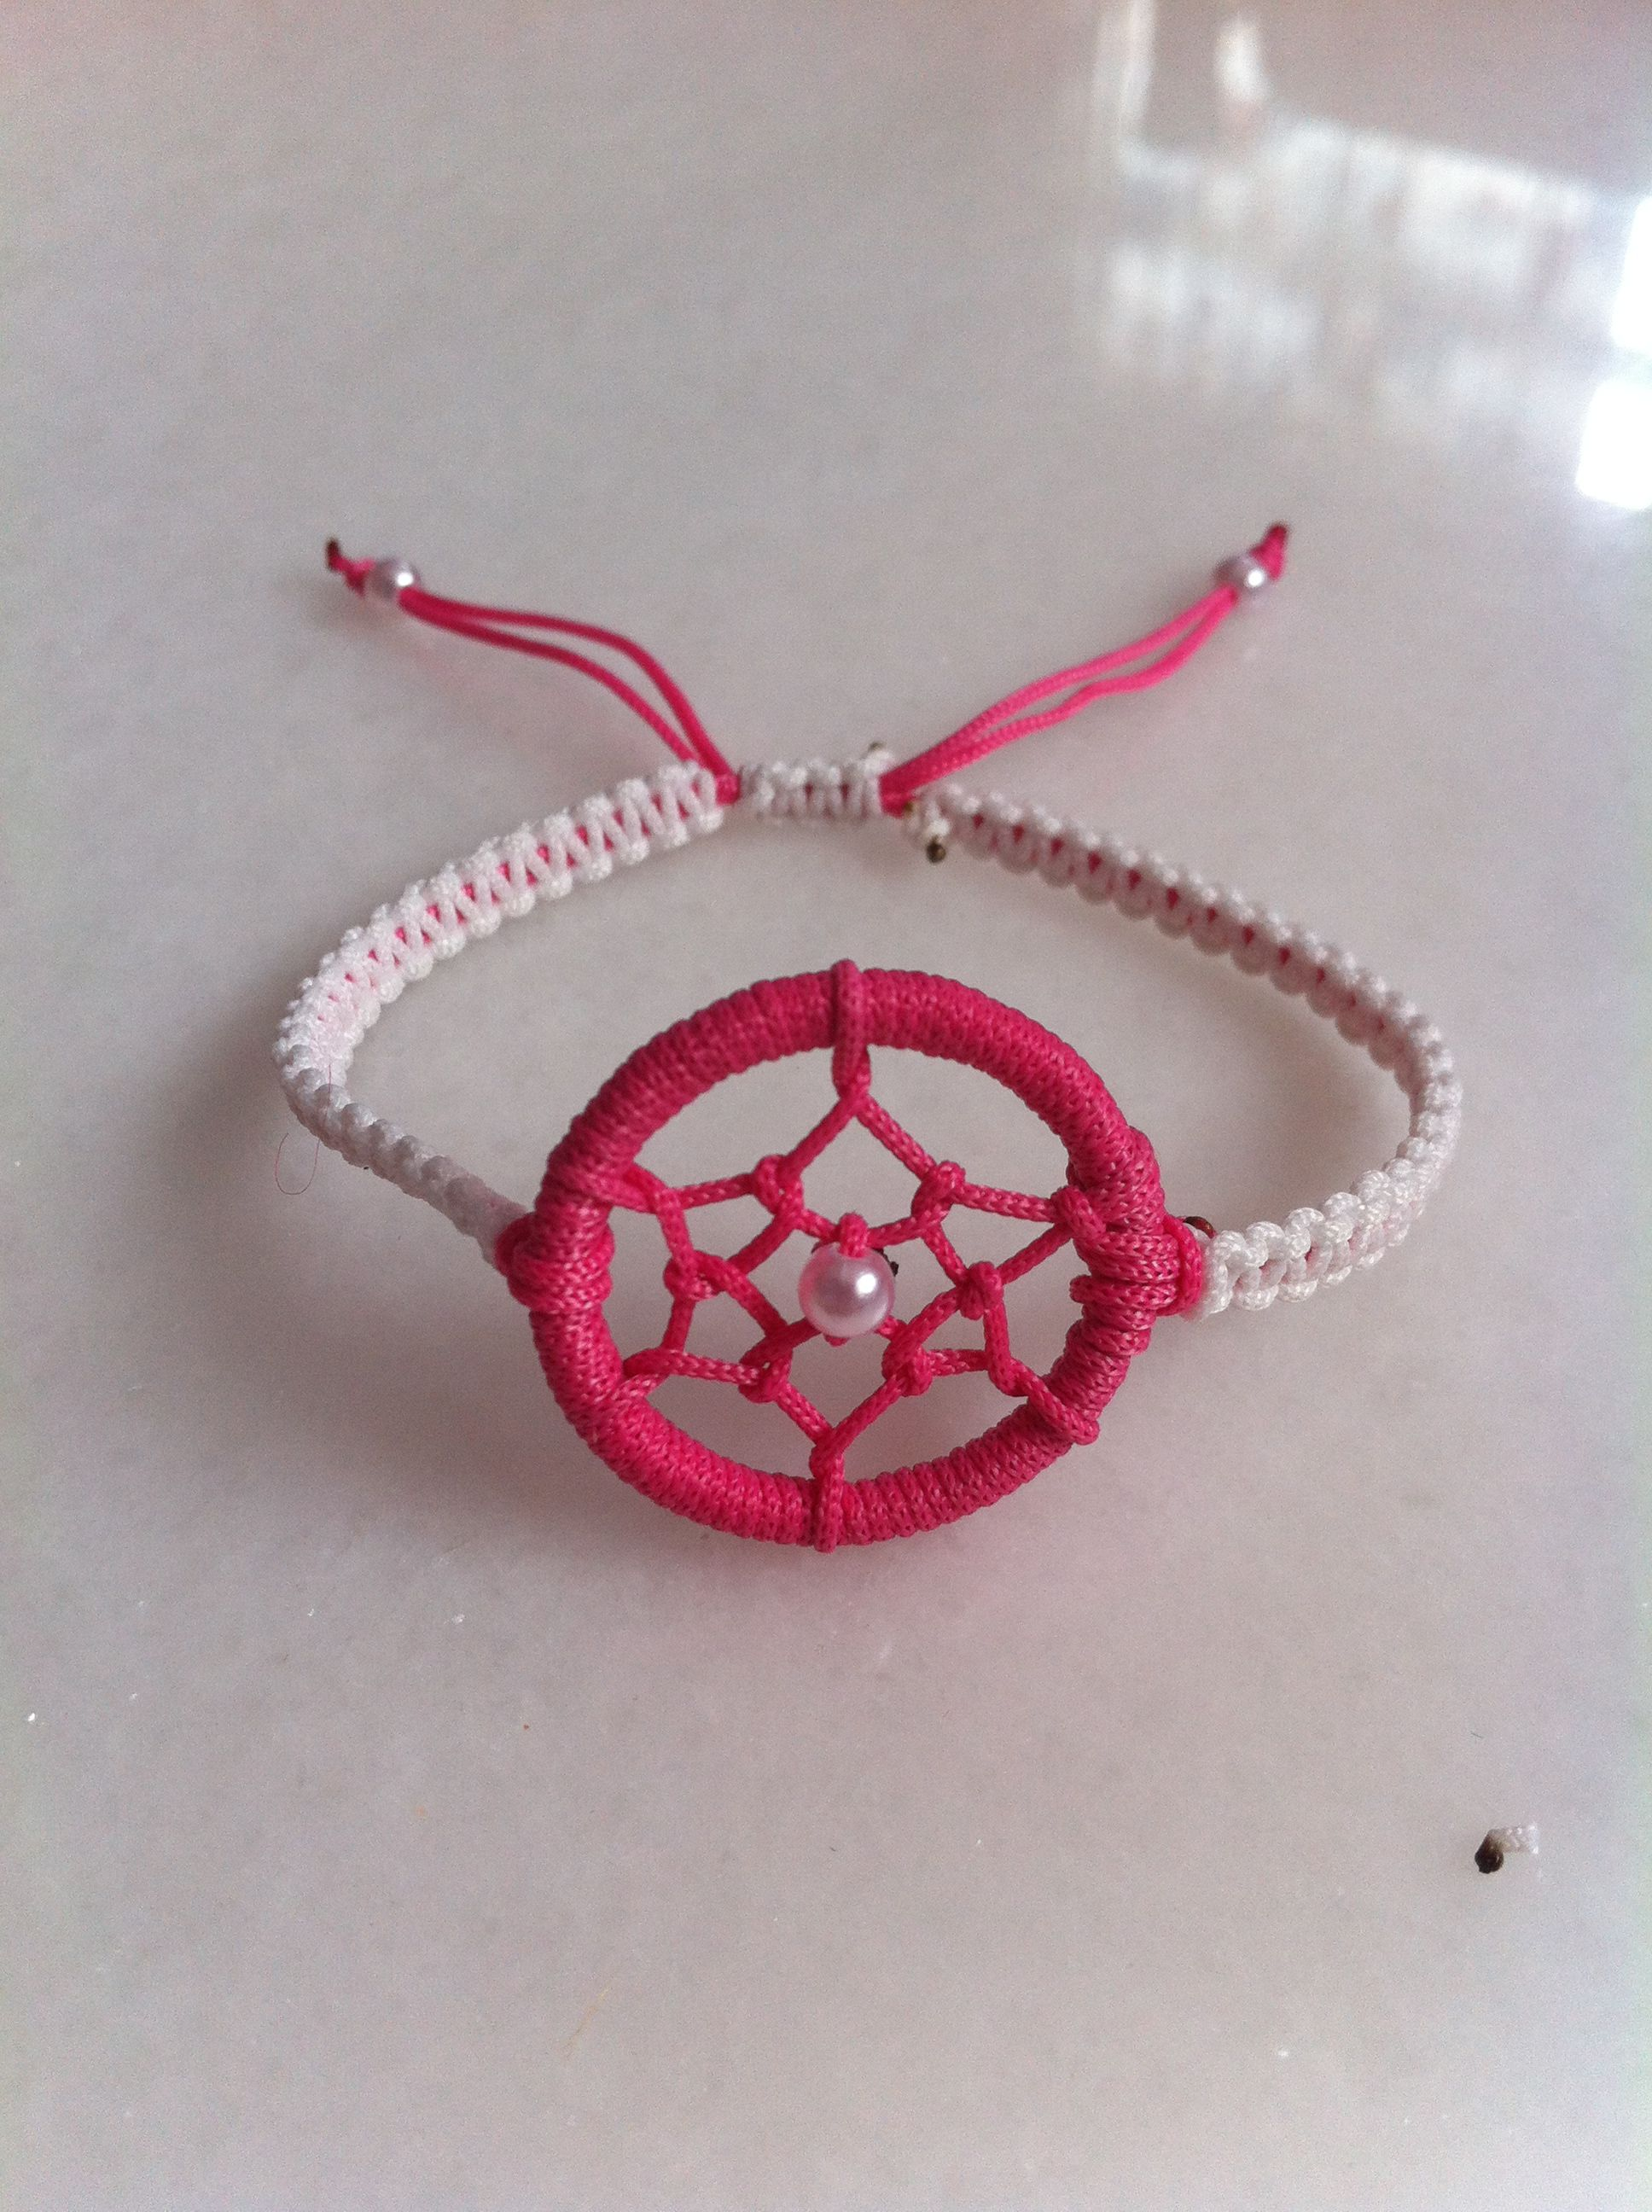 Light Pink And Dark Red Dream Catcher Bracelet Instead Of Chain It Twisted Thing Strings To Hang On Wrist